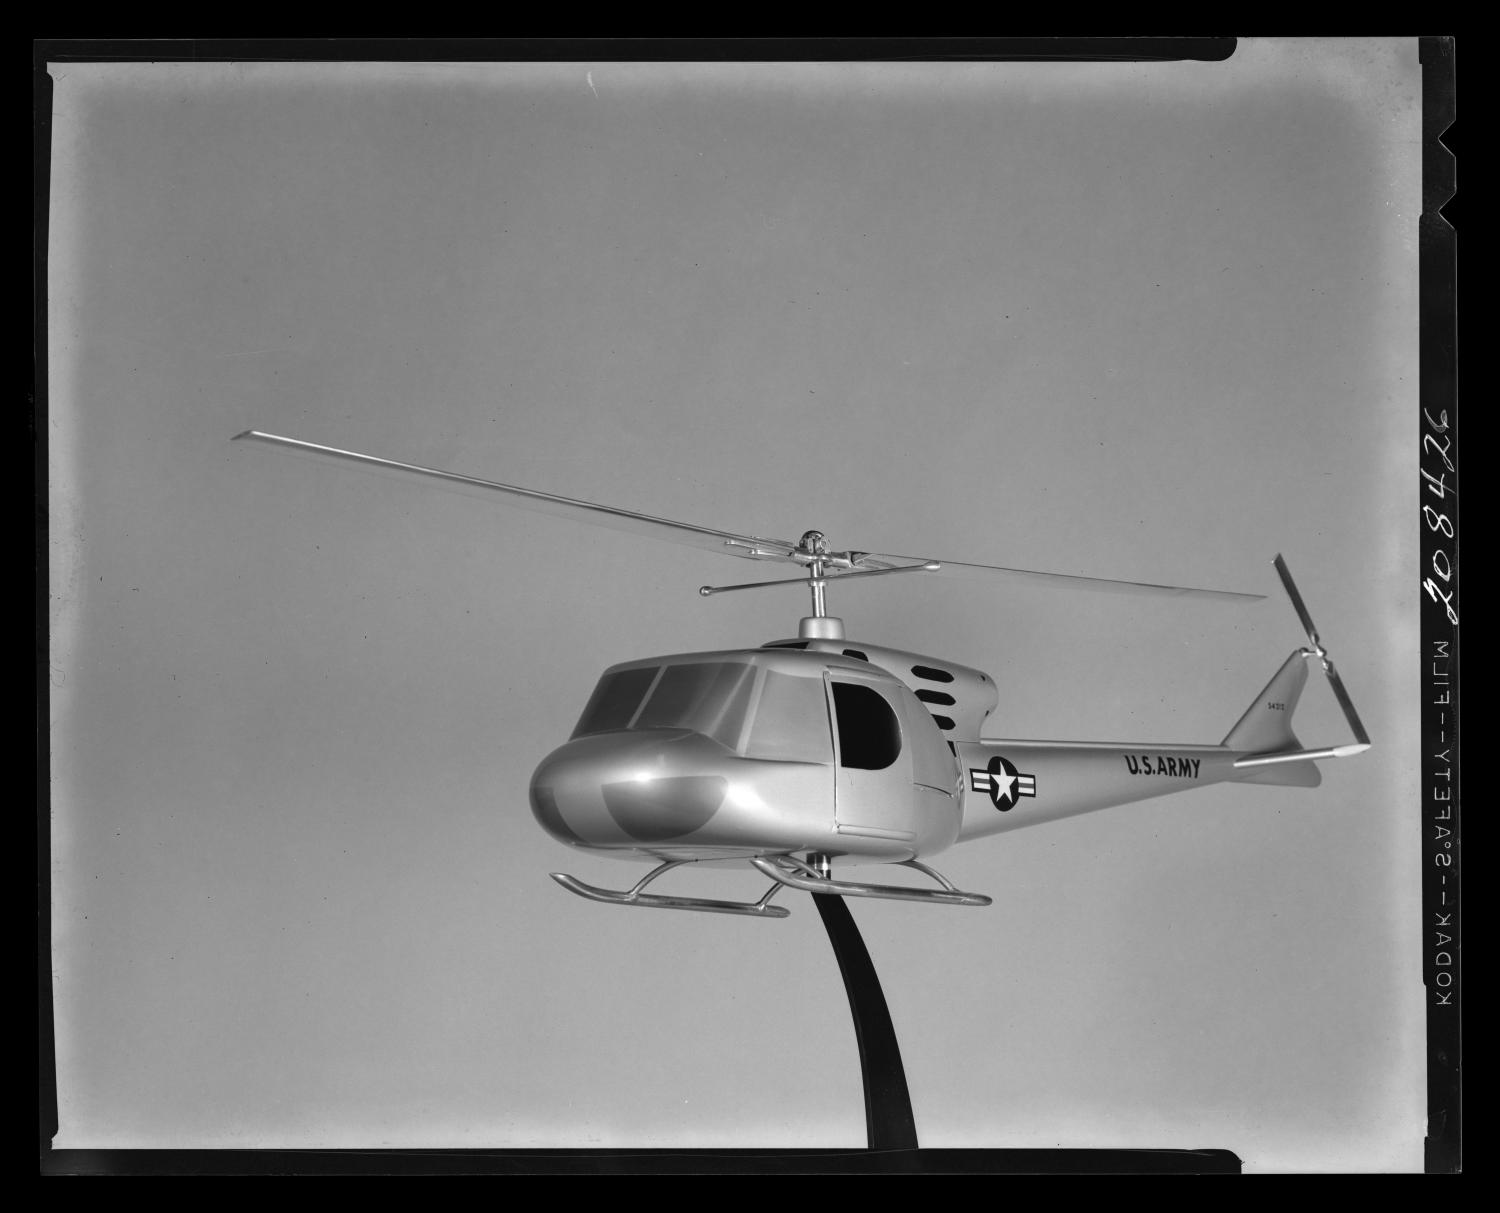 [Model of the Bell 204 helicopter]                                                                                                      [Sequence #]: 1 of 1